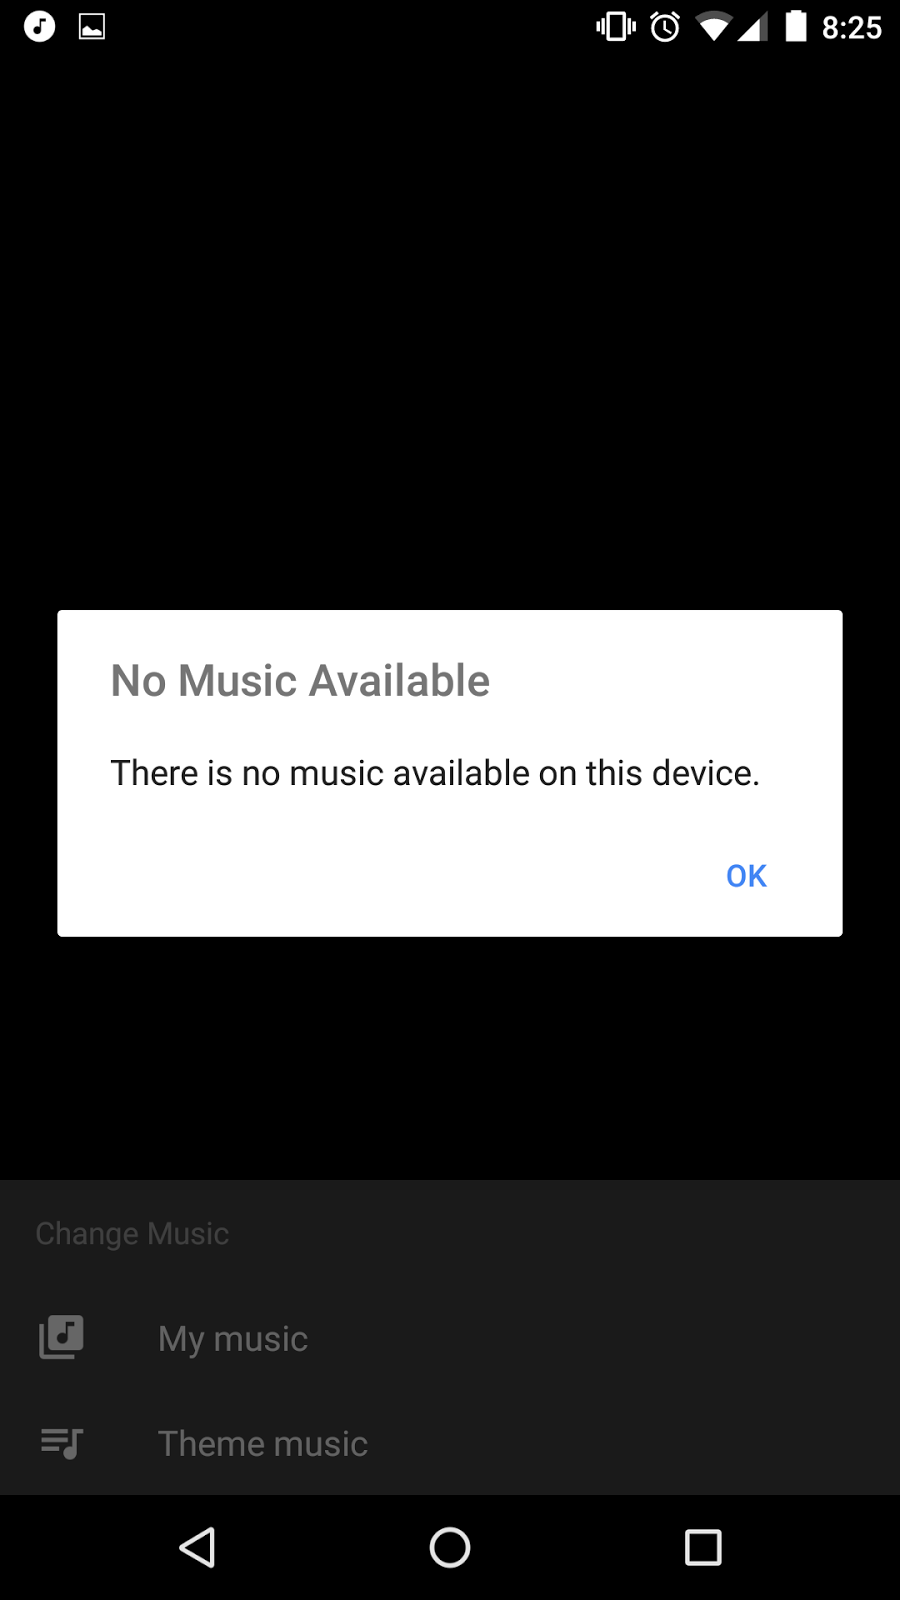 How to add music to my android phone